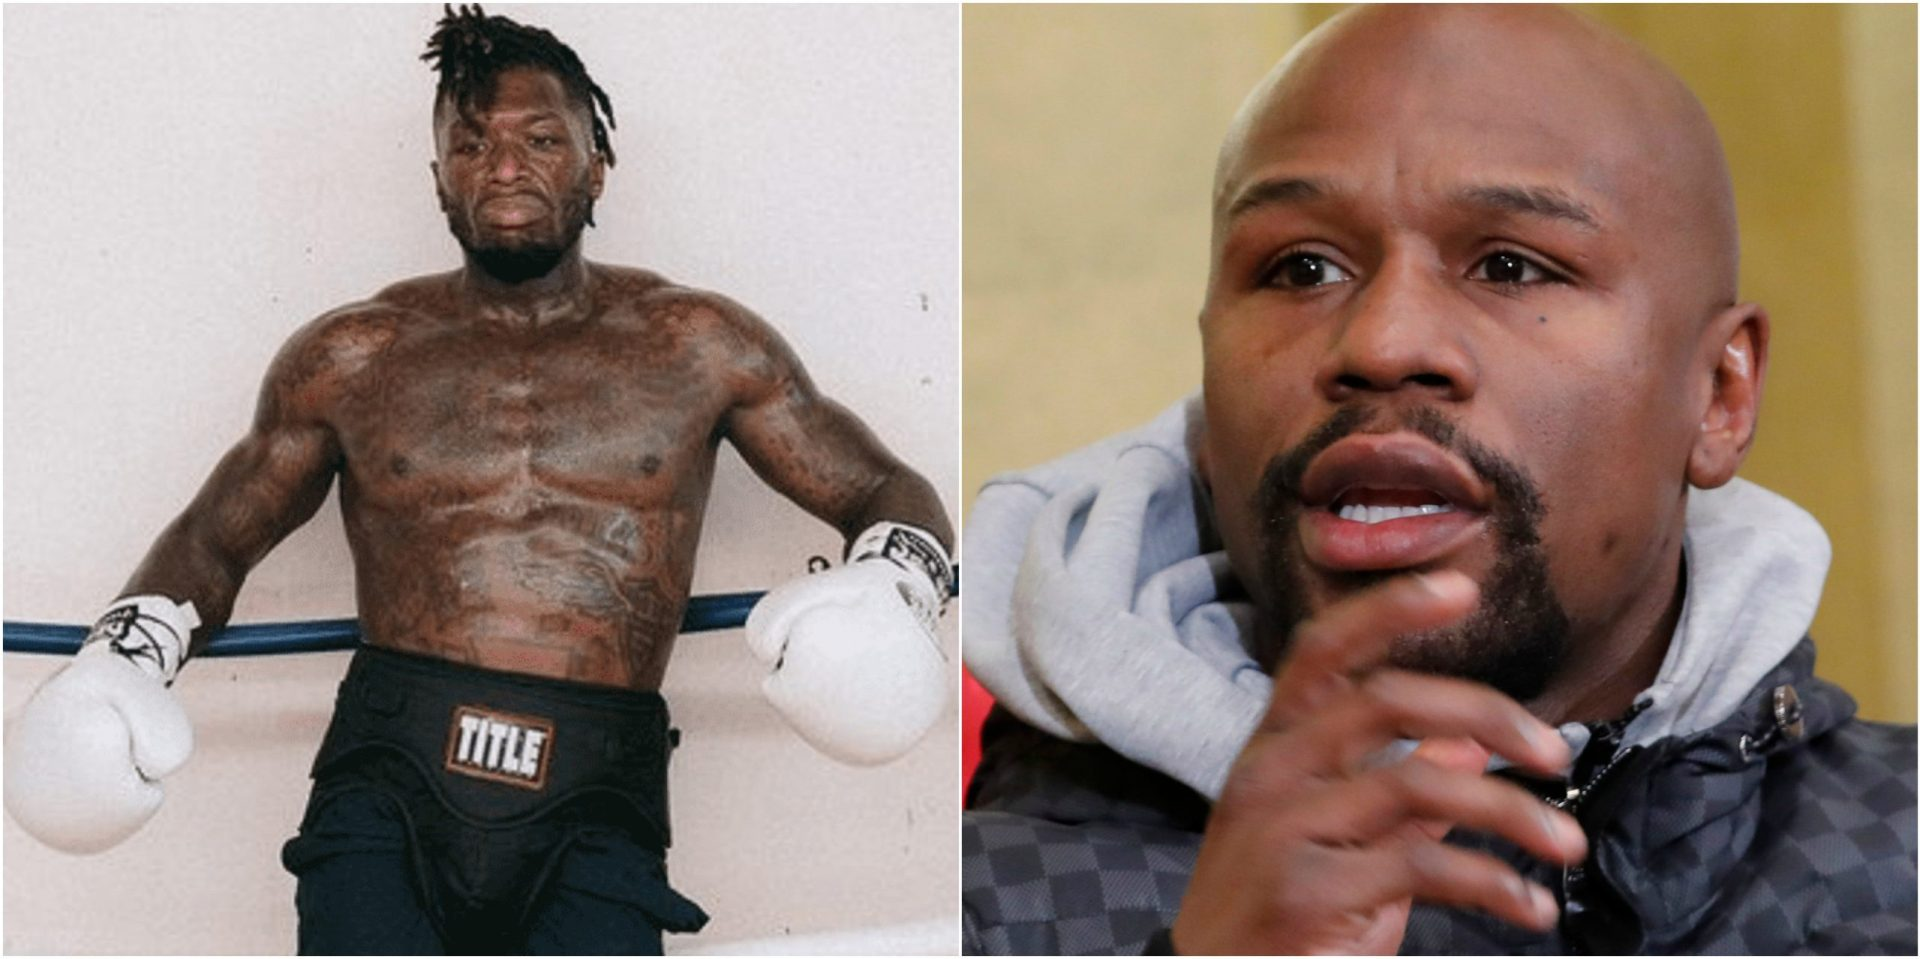 Floyd Mayweather disapproves the mockery Nate Robinson is facing - THE SPORTS ROOM